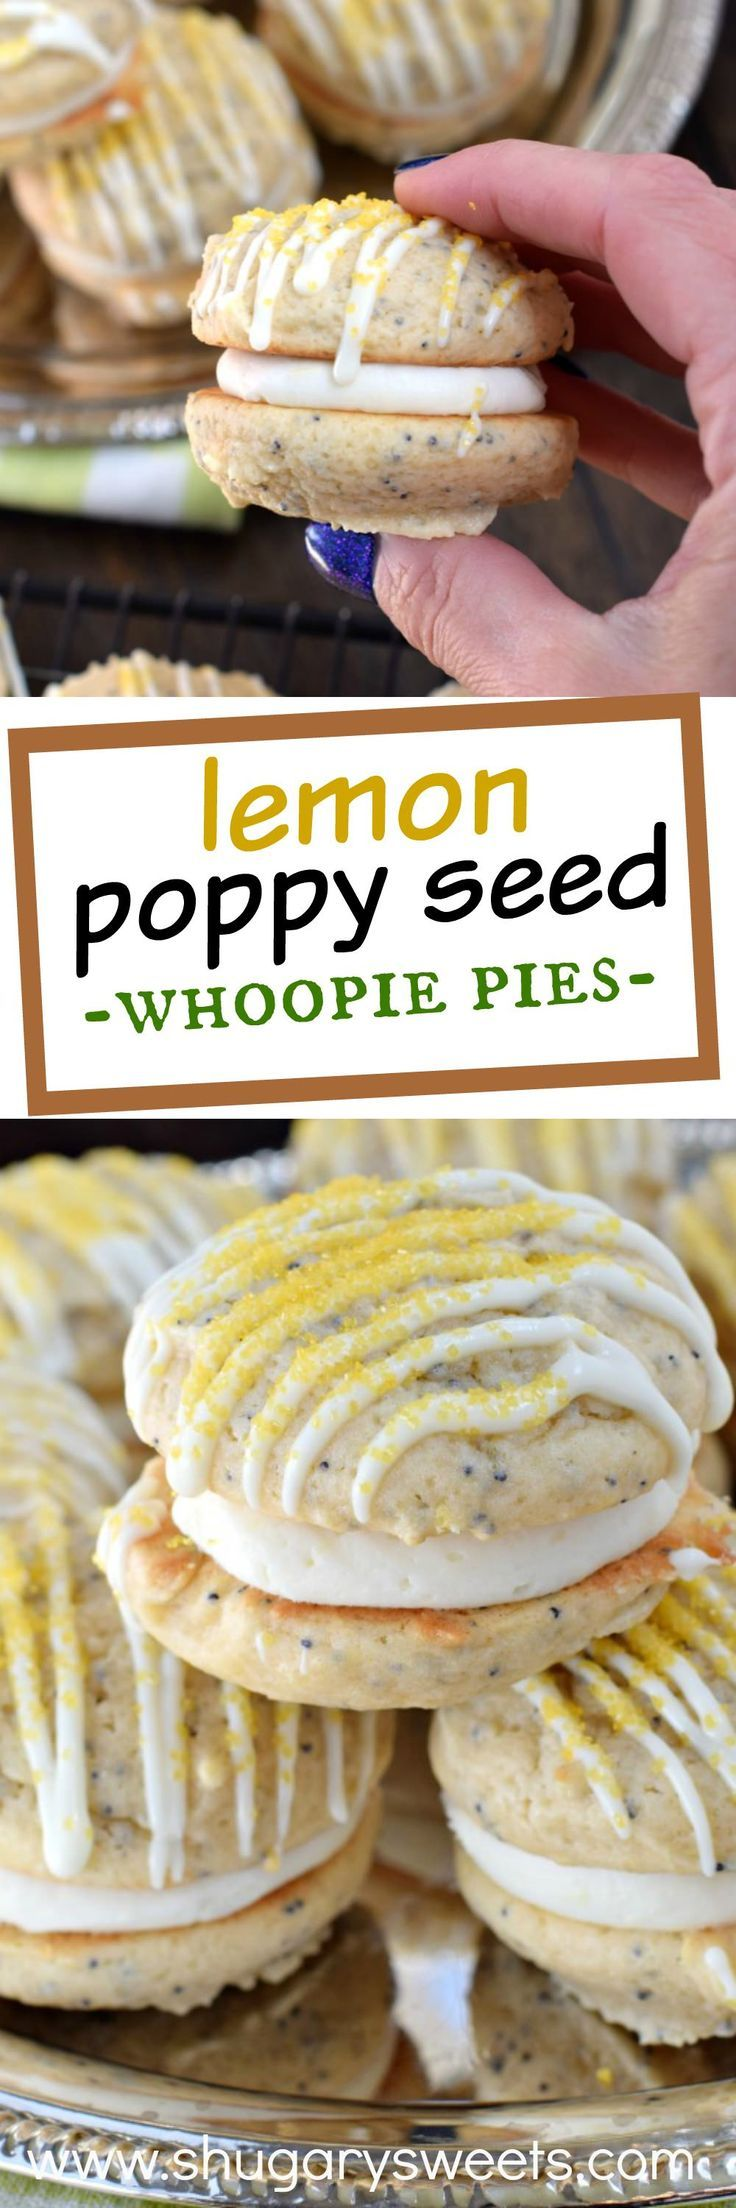 1000+ images about Whoopie pies on Pinterest | Pies, Sweets and ...